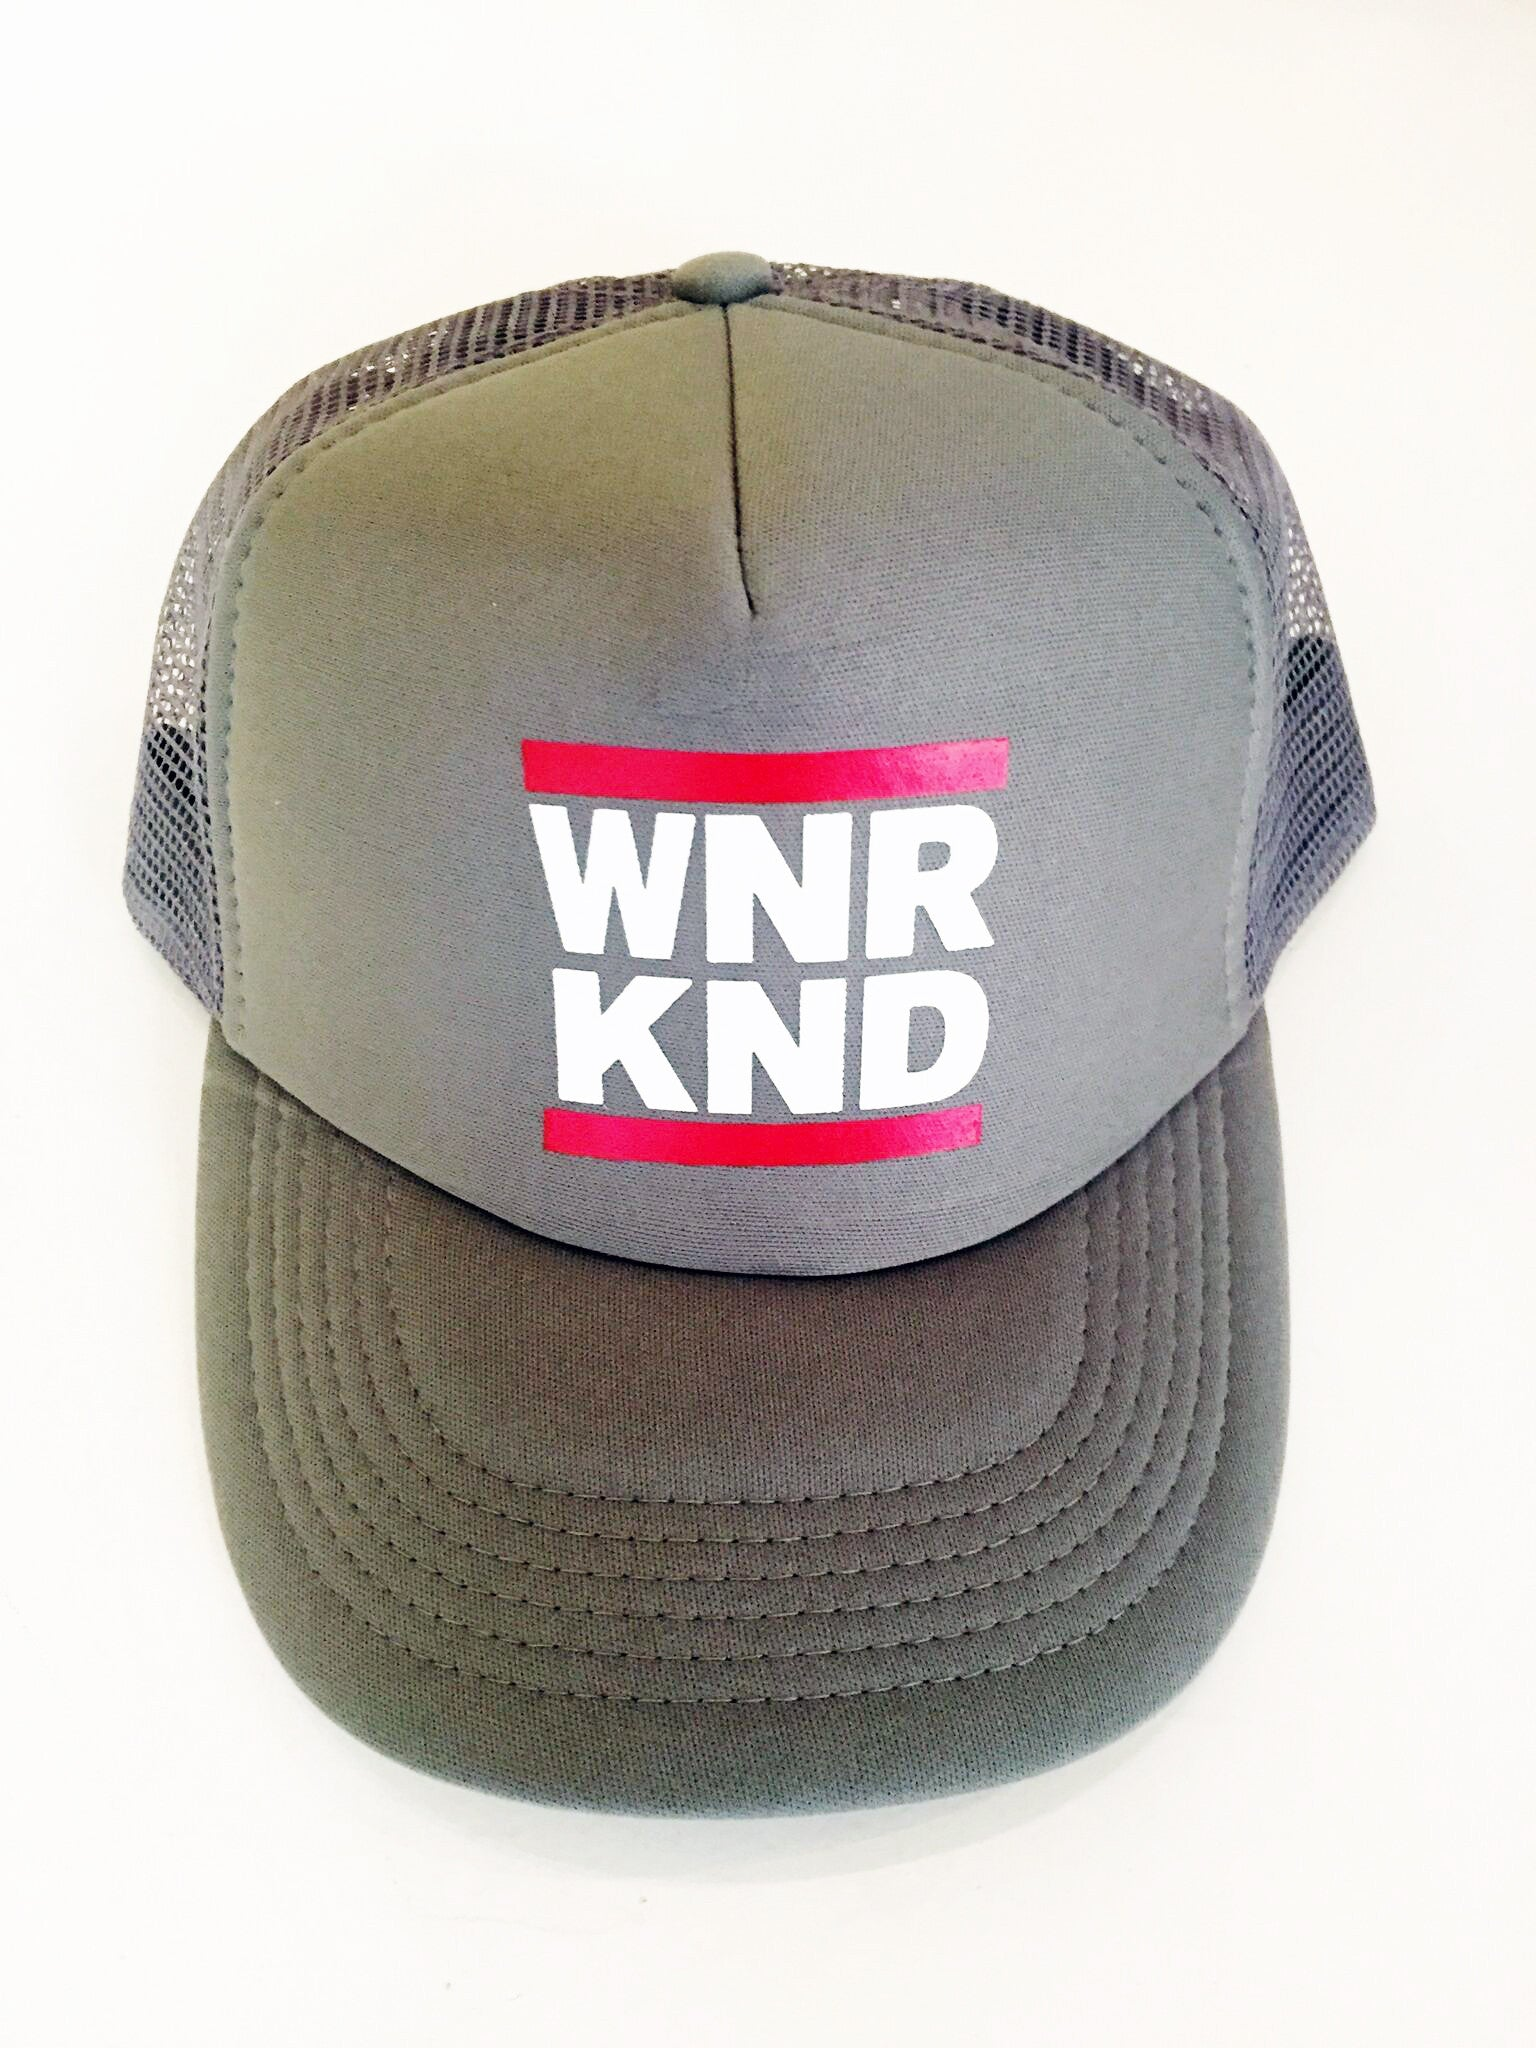 WNRKND Trucker Cap dark grey